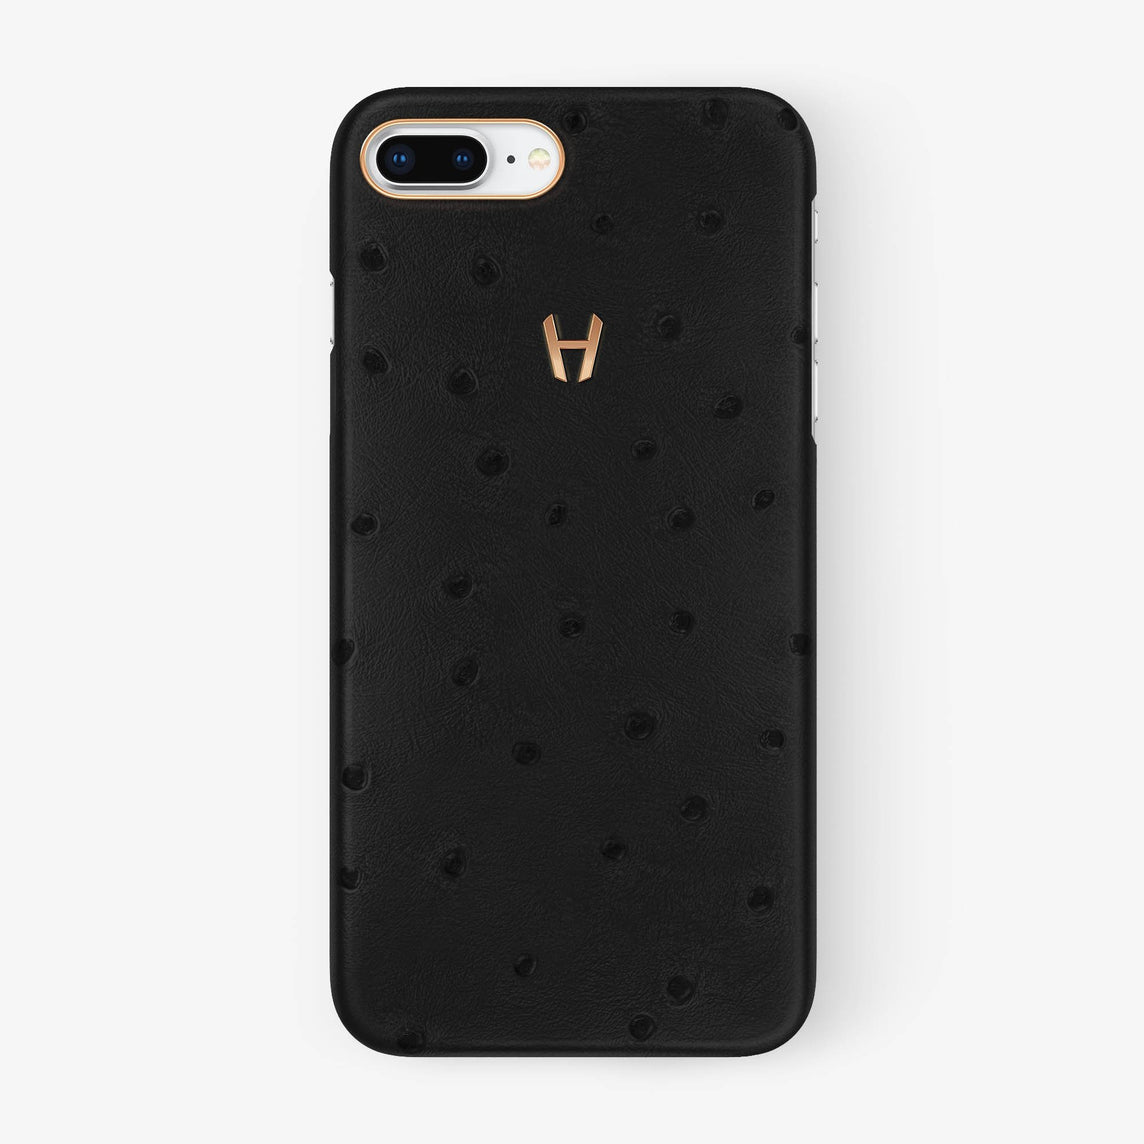 Ostrich Case iPhone 7/8 Plus | Anthracite - Rose Gold without-personalization